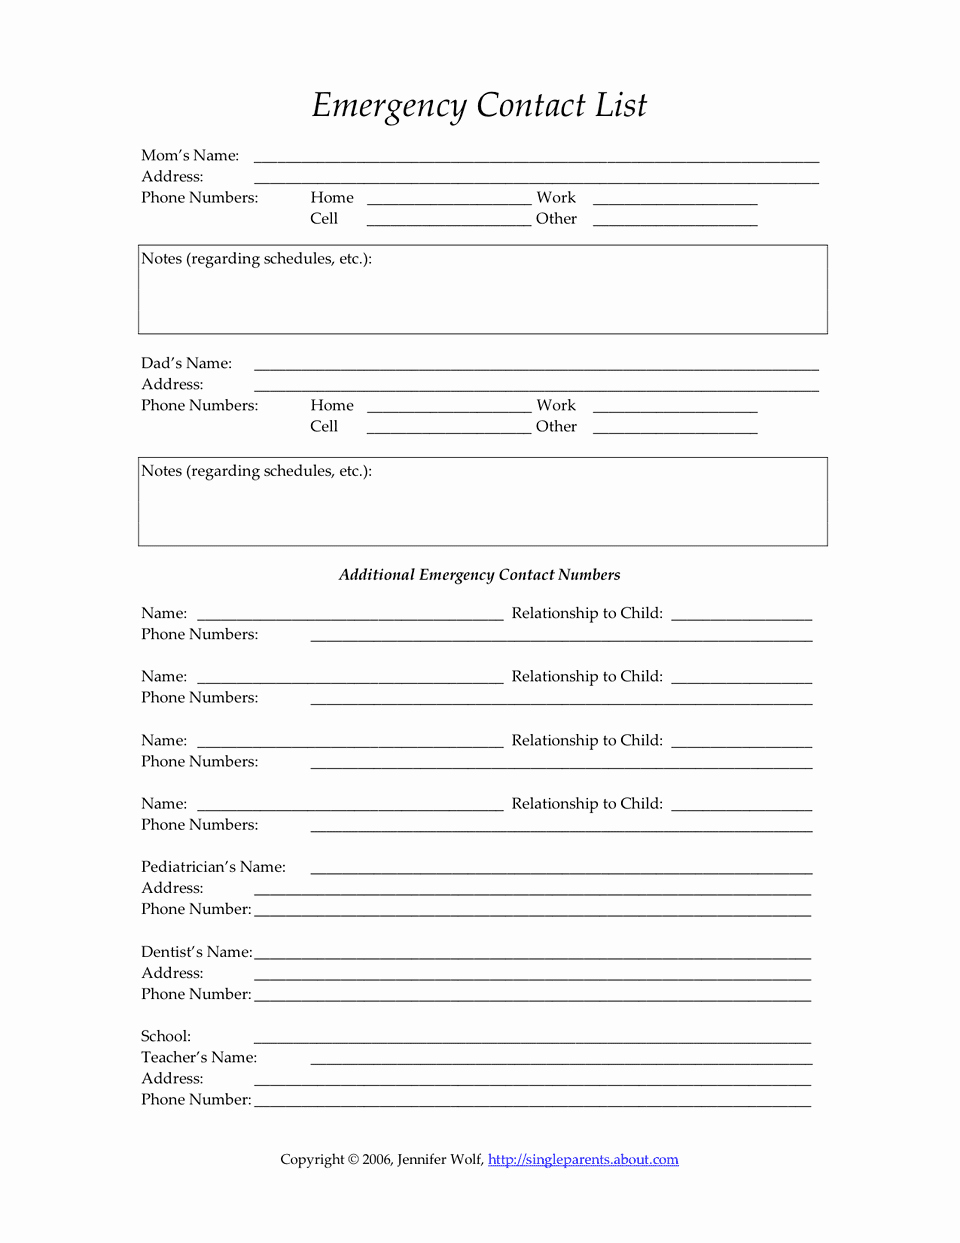 Emergency Contact List for Business Inspirational form Templates Child Care Emergency Contact form Child